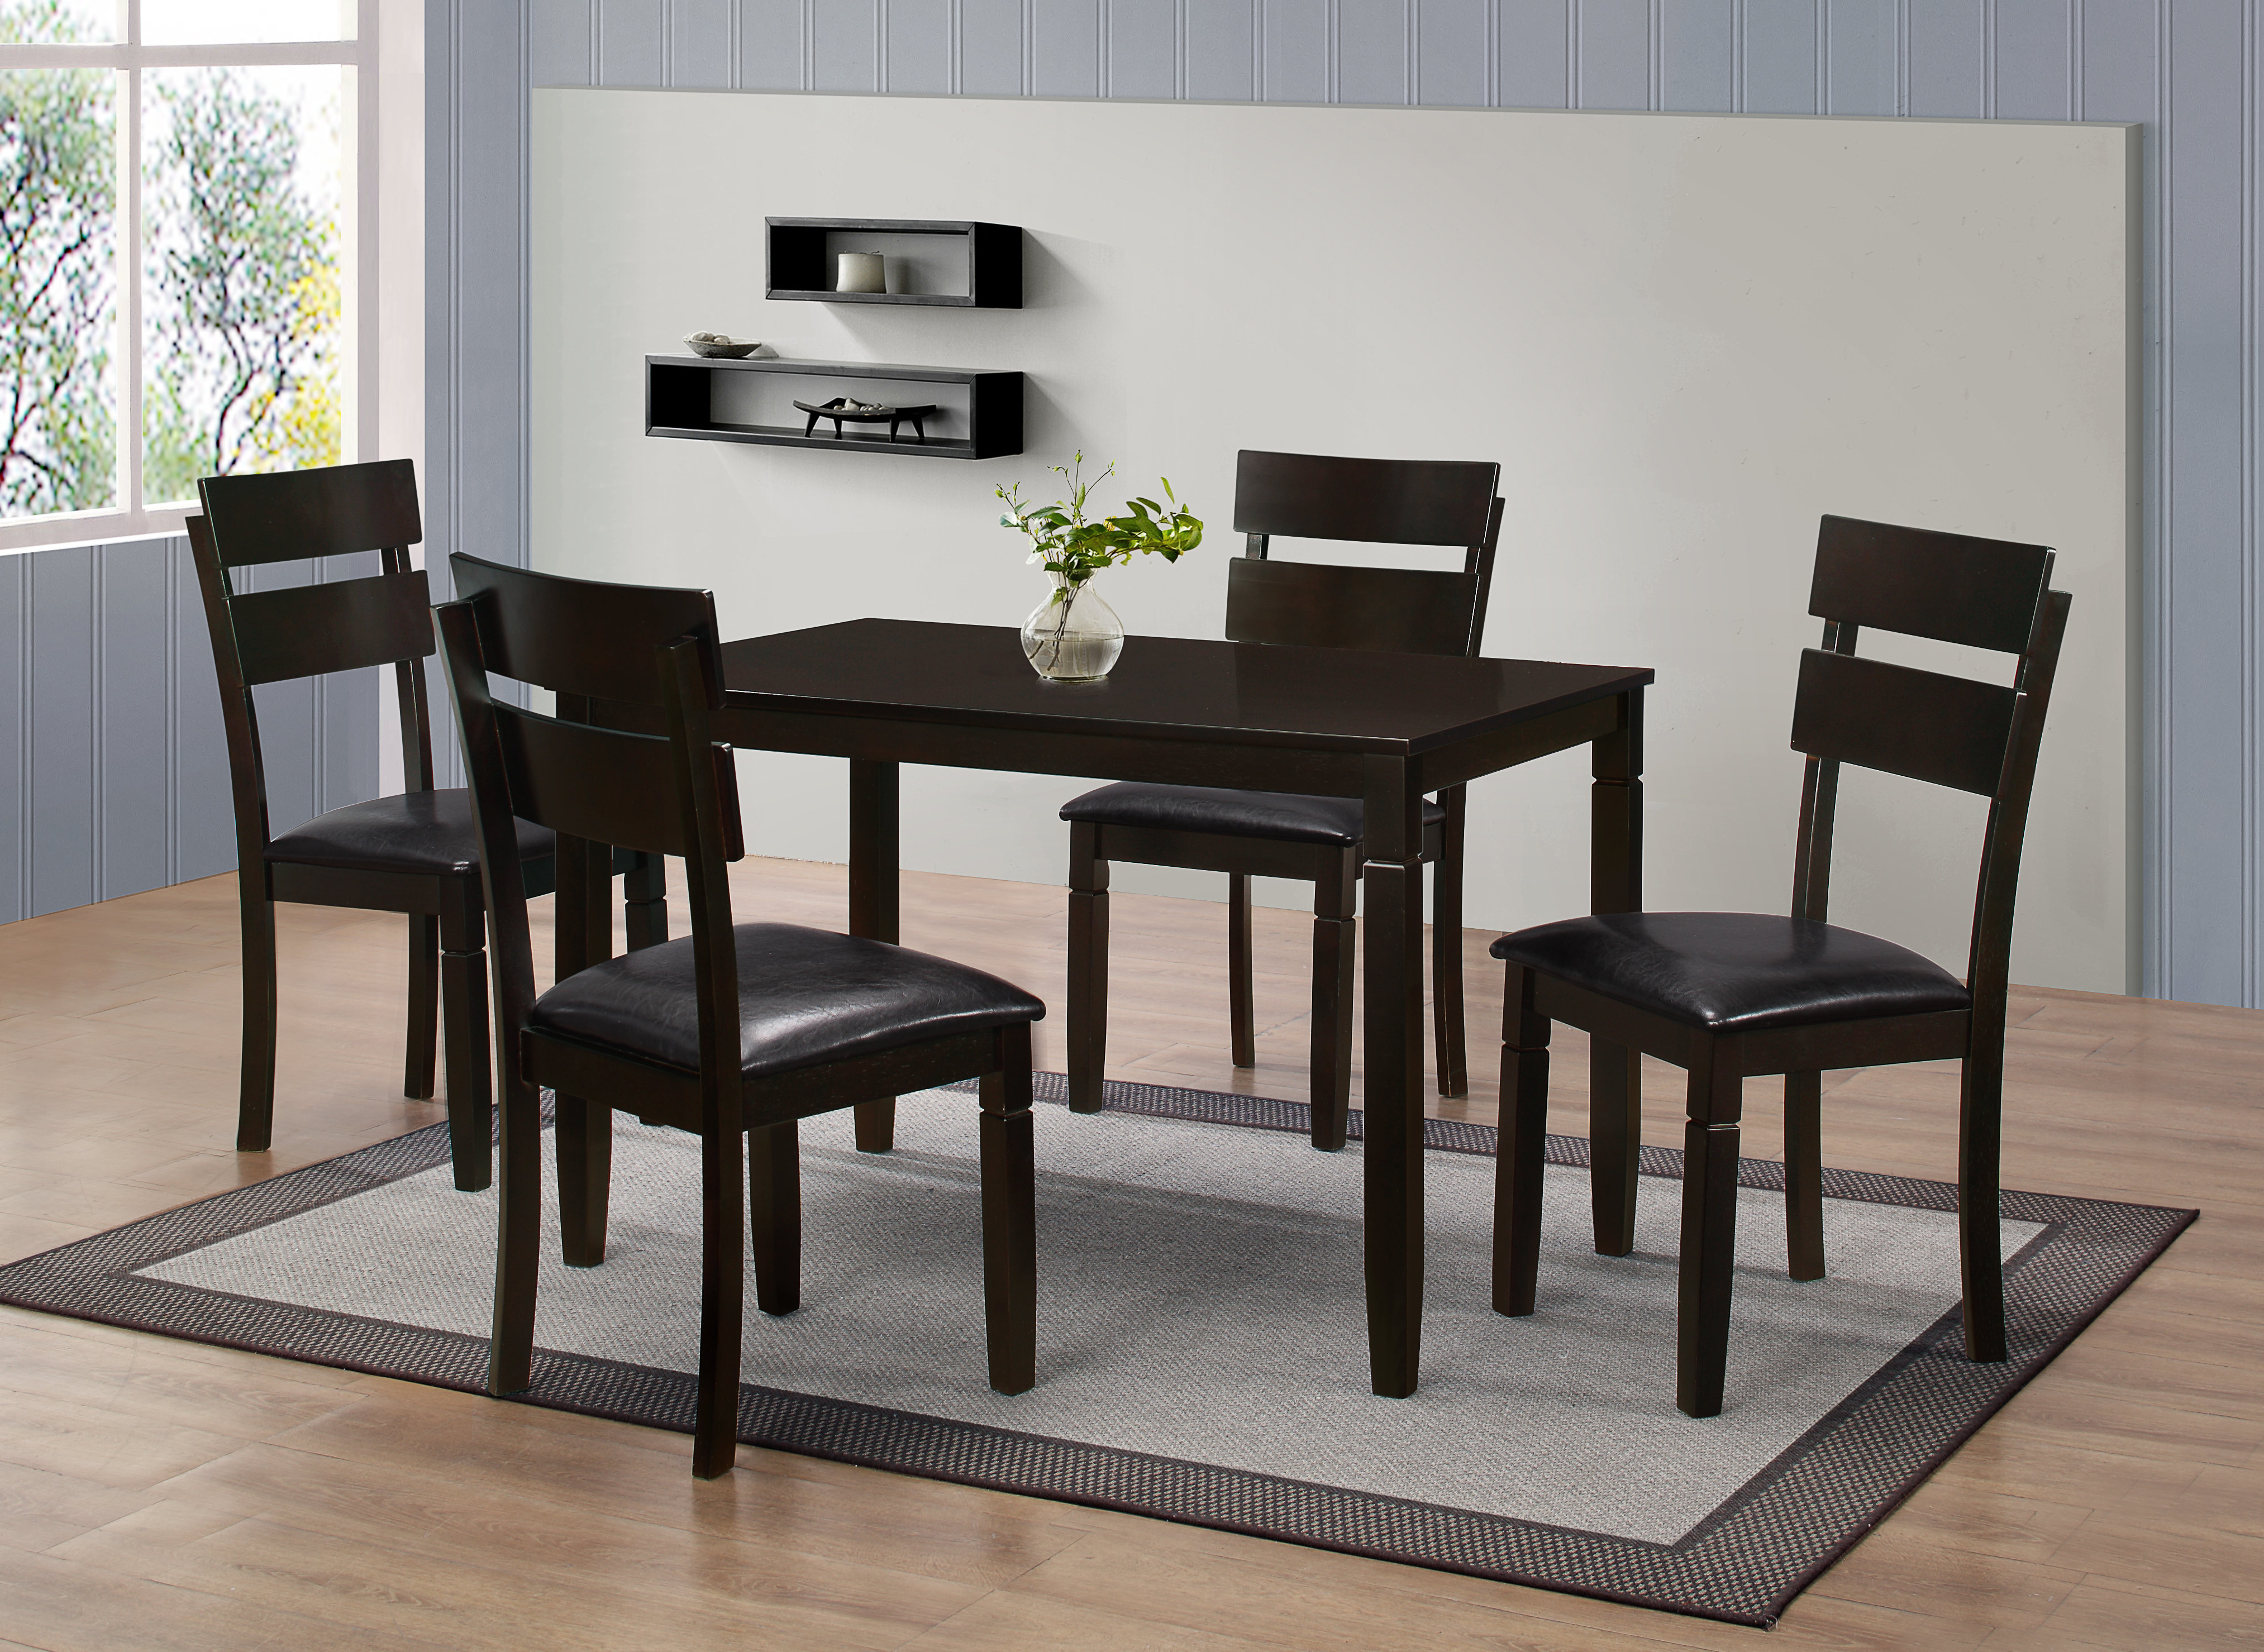 Winnetka 5 Piece Dining Set With Regard To Recent Autberry 5 Piece Dining Sets (View 16 of 20)